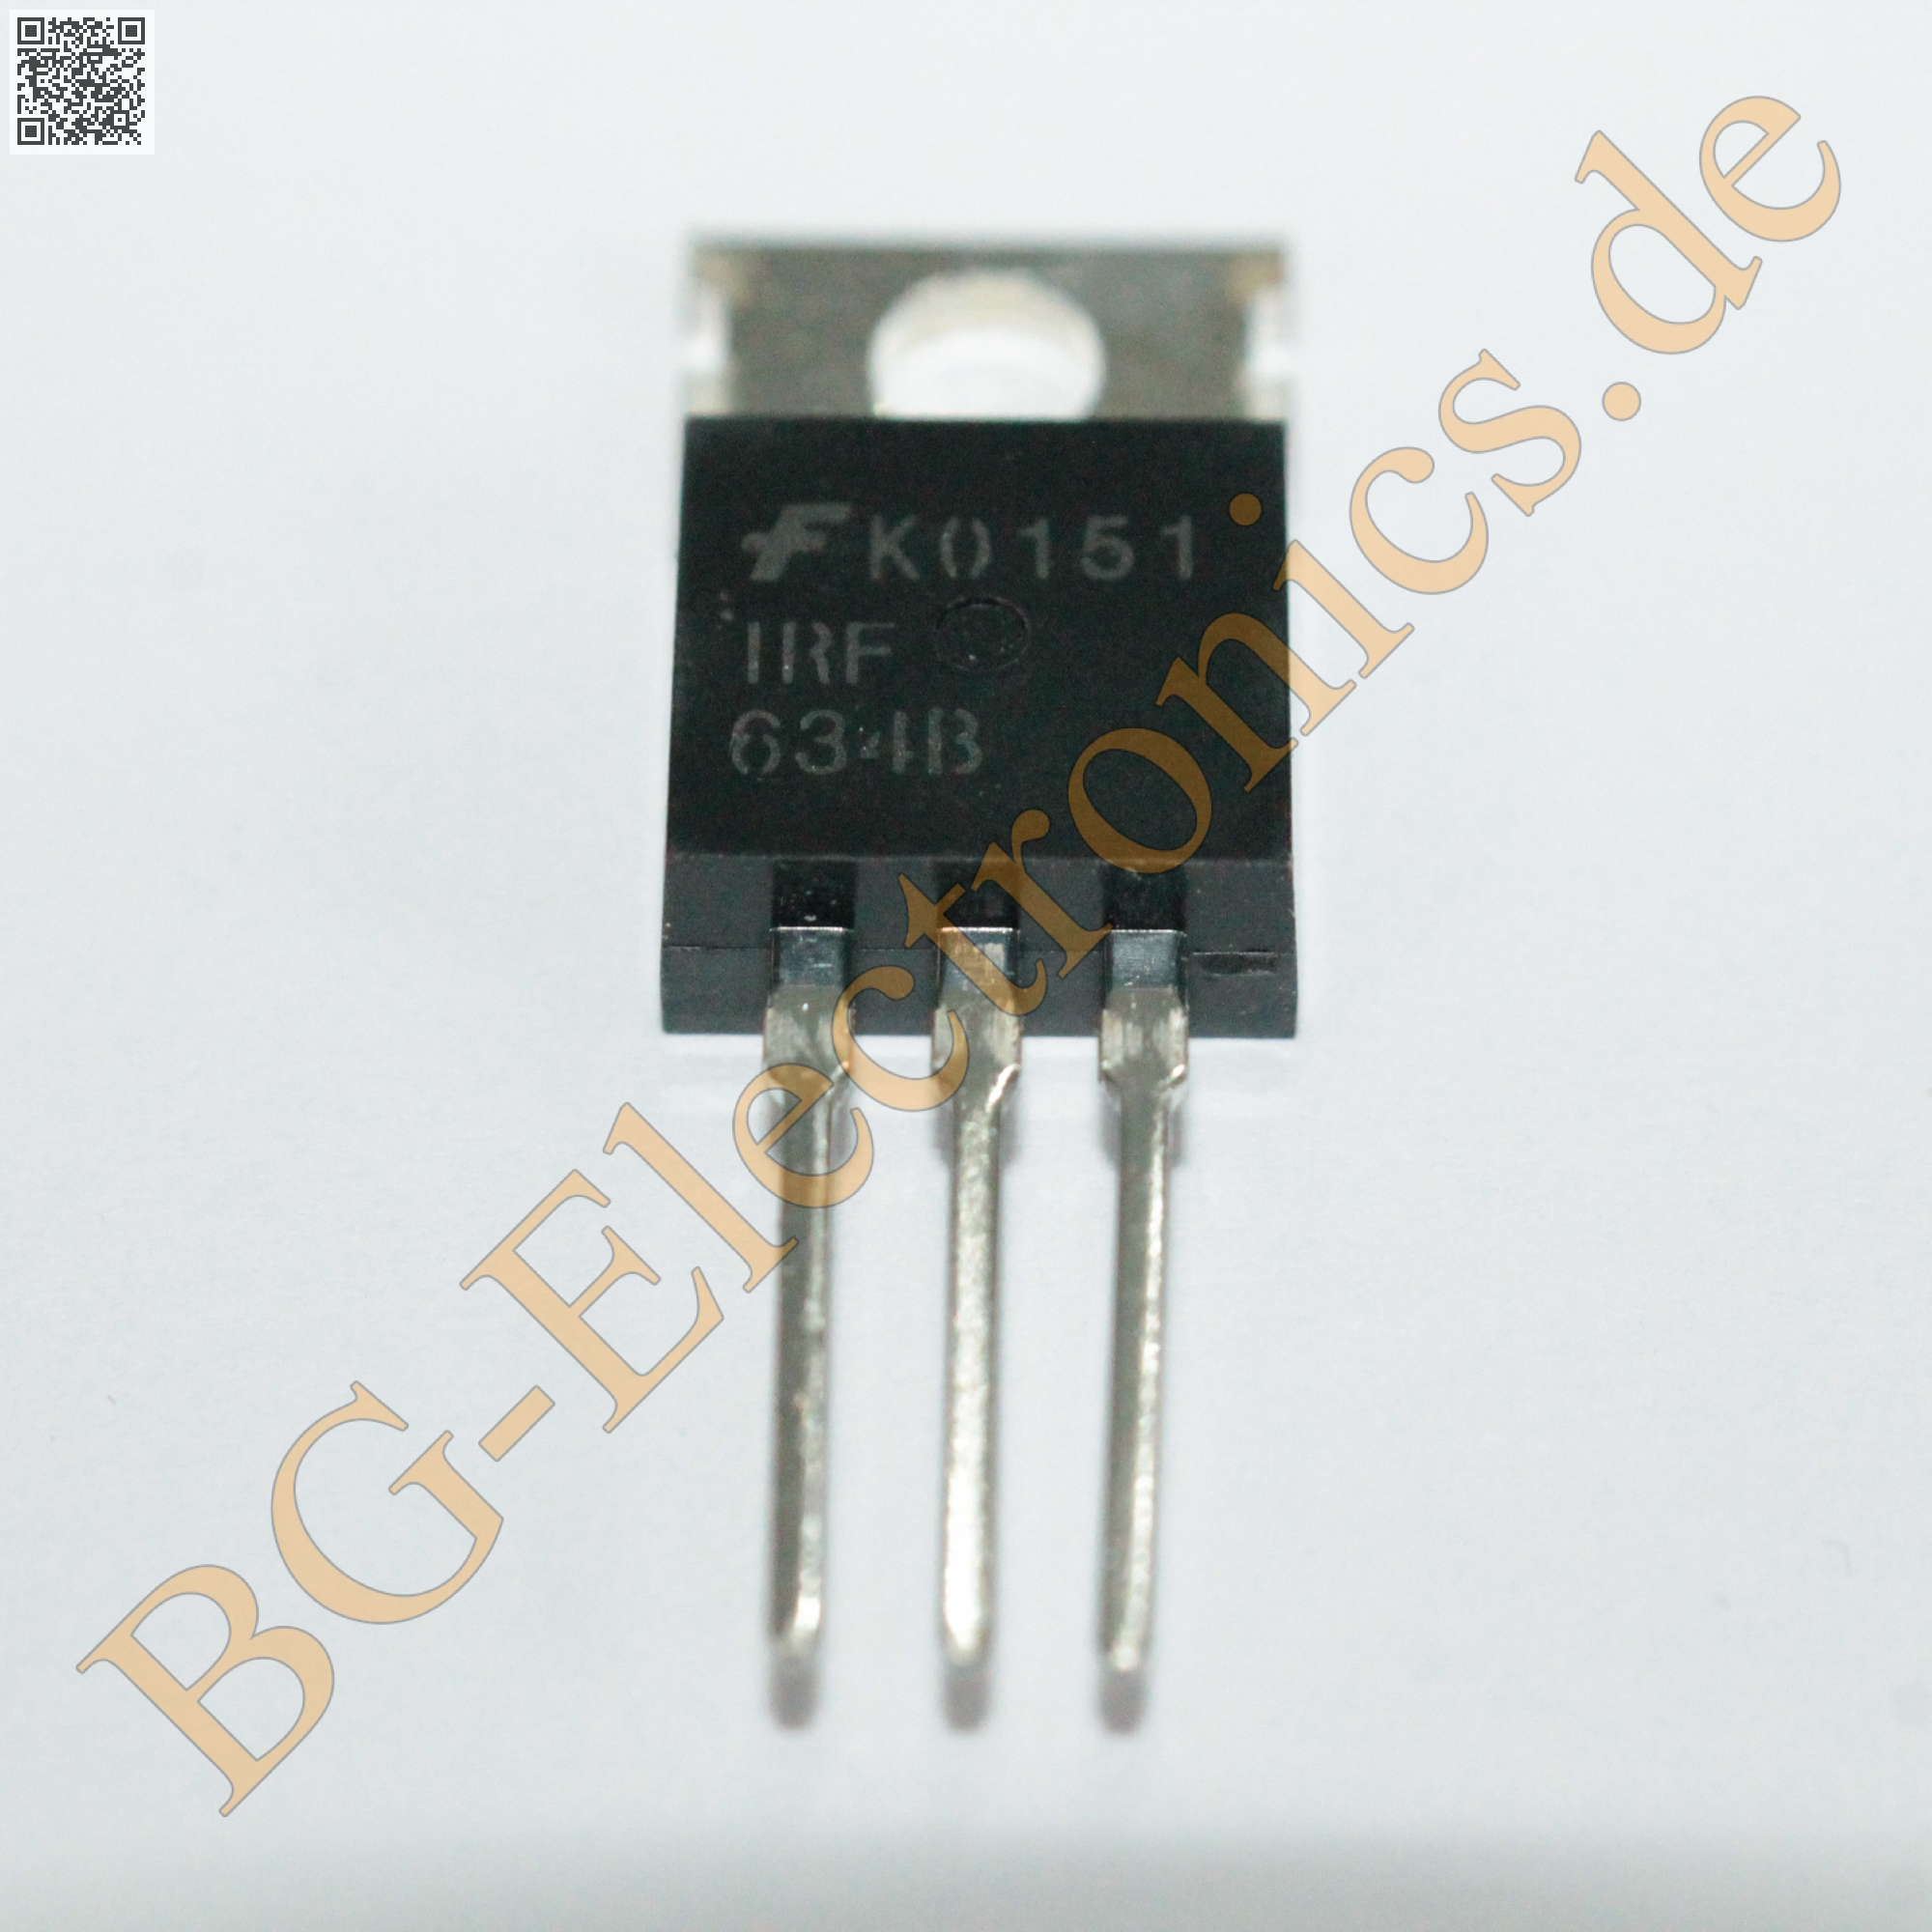 FAIRCHILD IRFS634B TO-220F 250V N-Channel MOSFET